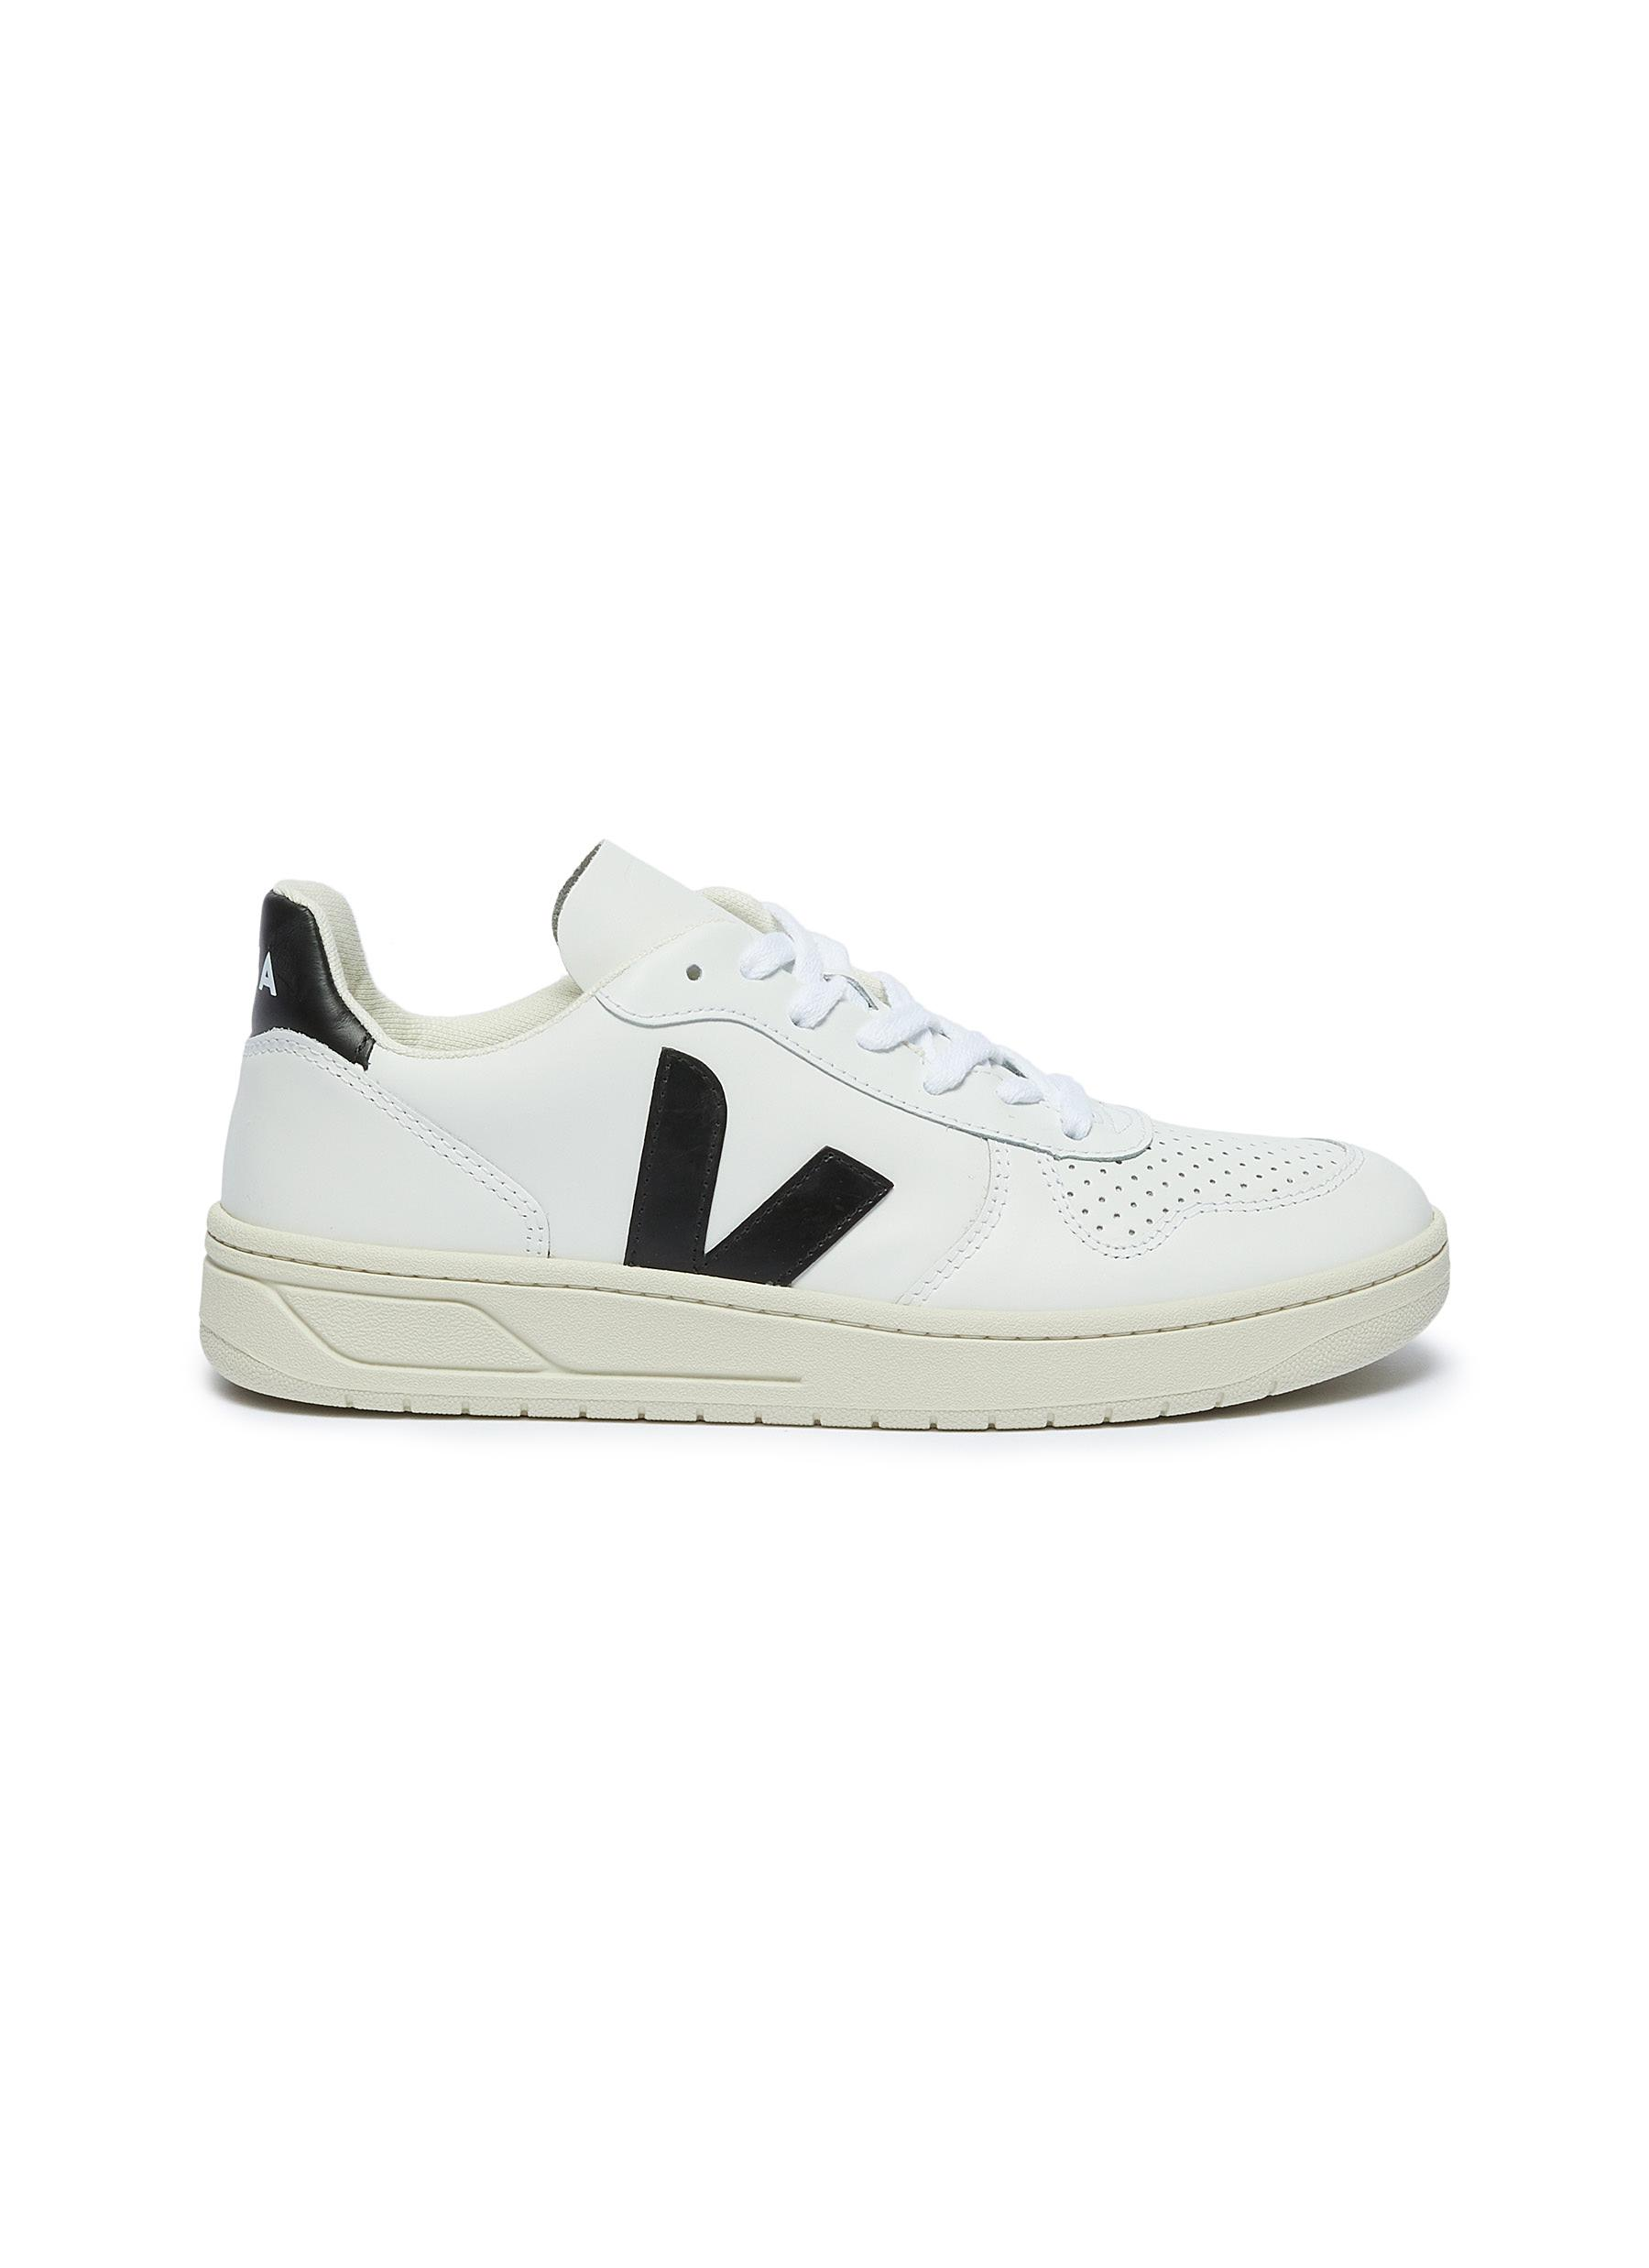 V-10 perforated leather sneakers by Veja